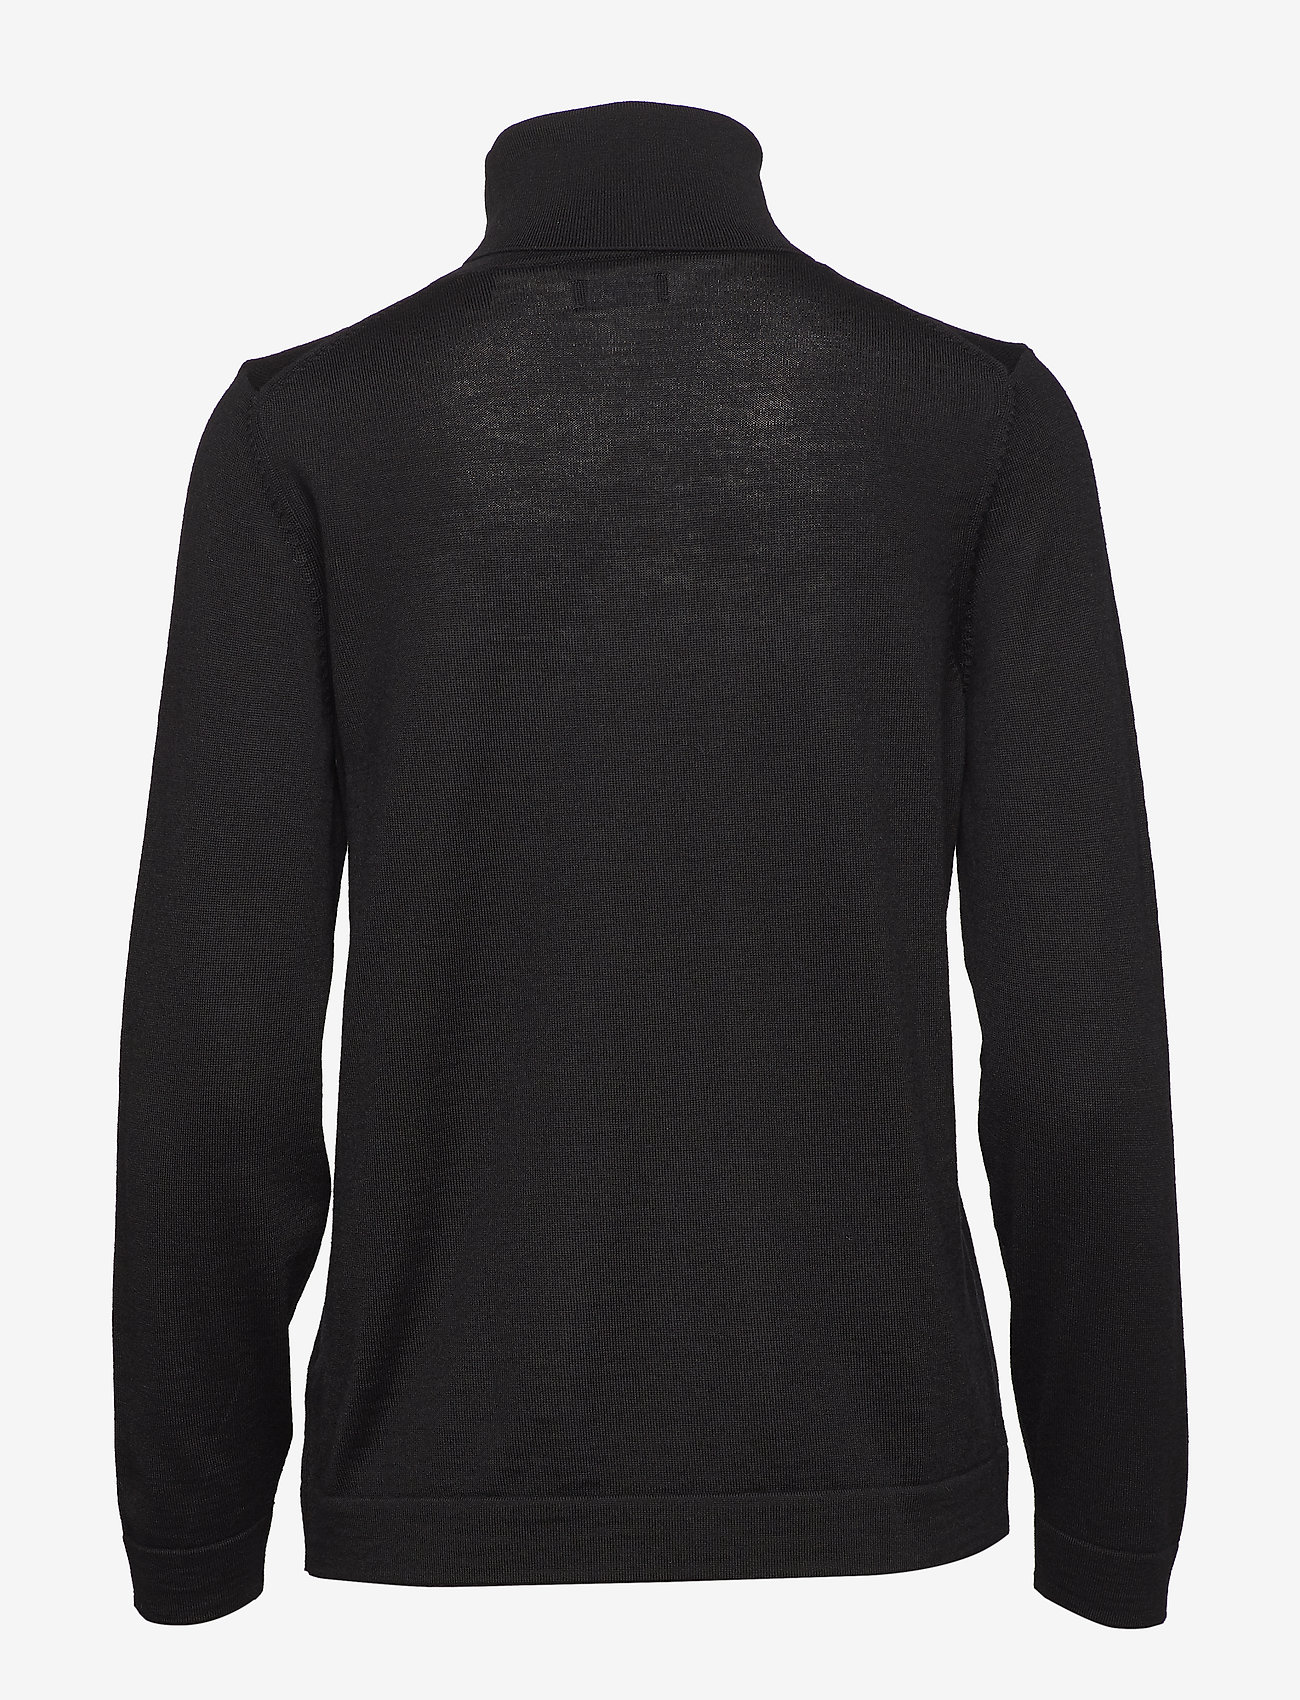 Gant - FINE MERINO TURTLE NECK - turtlenecks - black